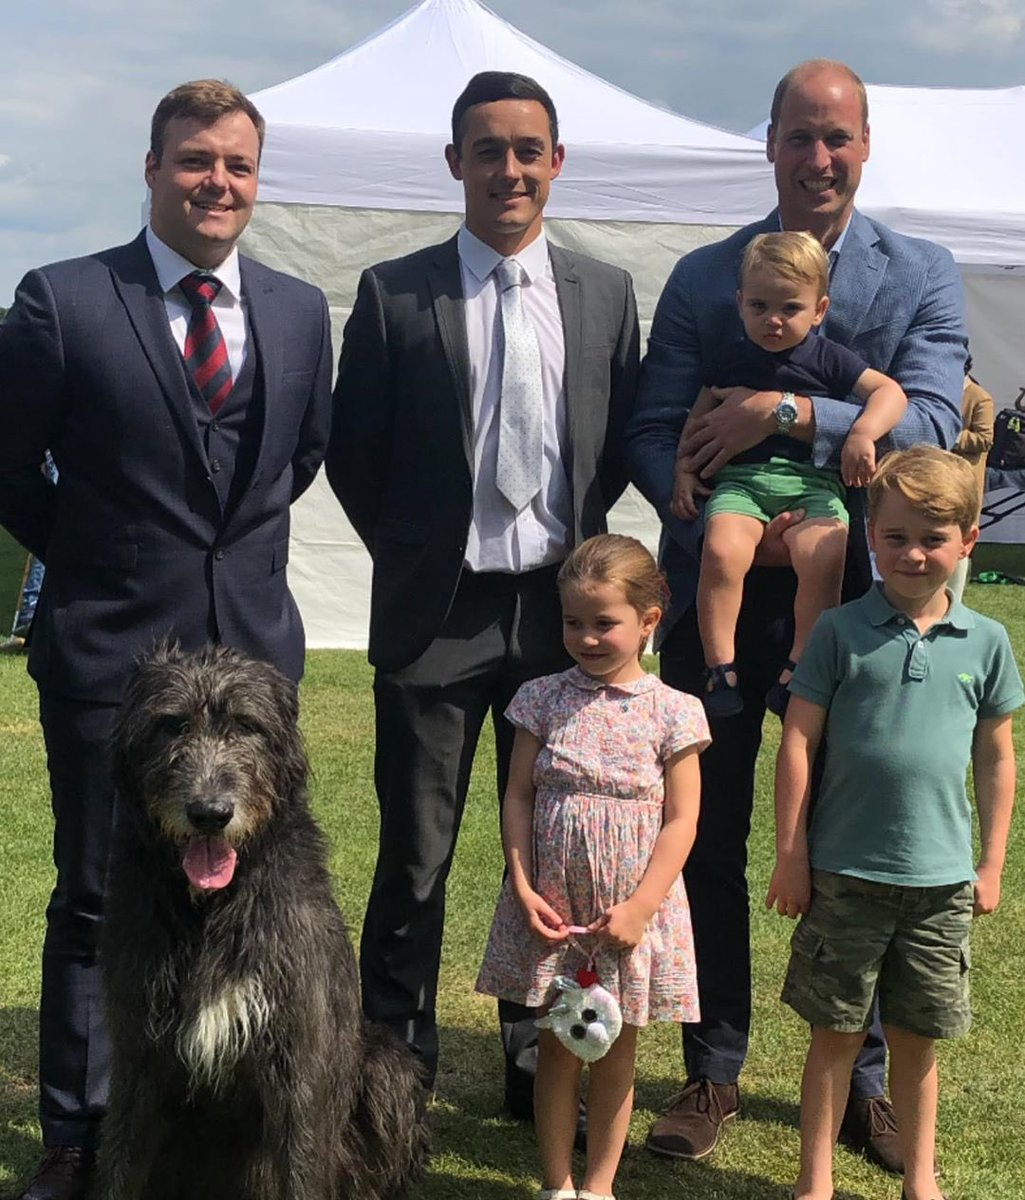 The Army In London, including @irish_guards Wolfhound mascot Domhnall, is wishing HRH Prince George a very happy 6th birthday today. Our Soldiers are always on duty, ready to serve! #PrinceGeorge<br>http://pic.twitter.com/JKrUja4GNL